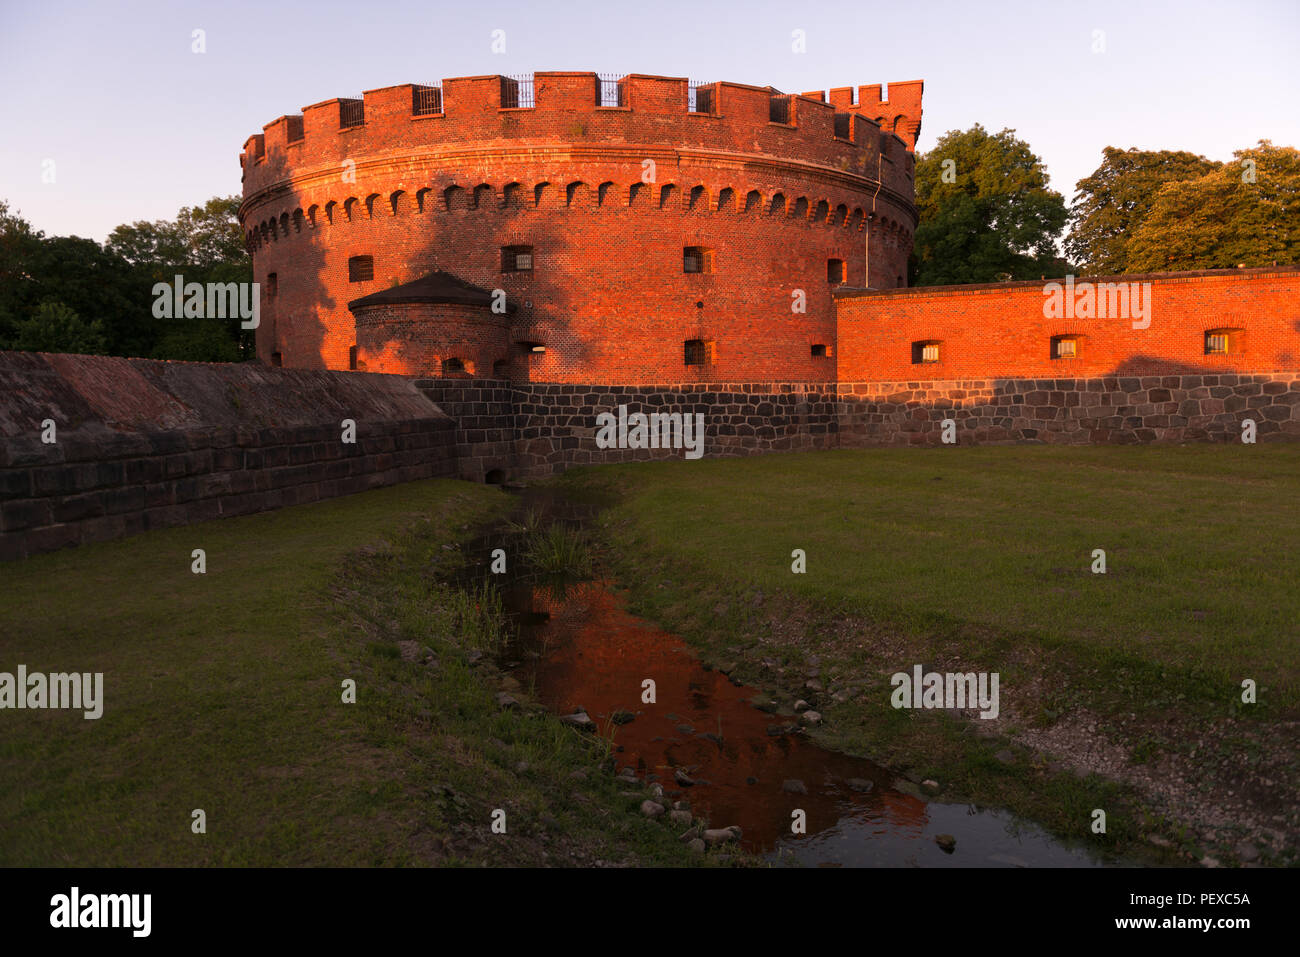 Where is Kaliningrad - the old fairy tale city 33